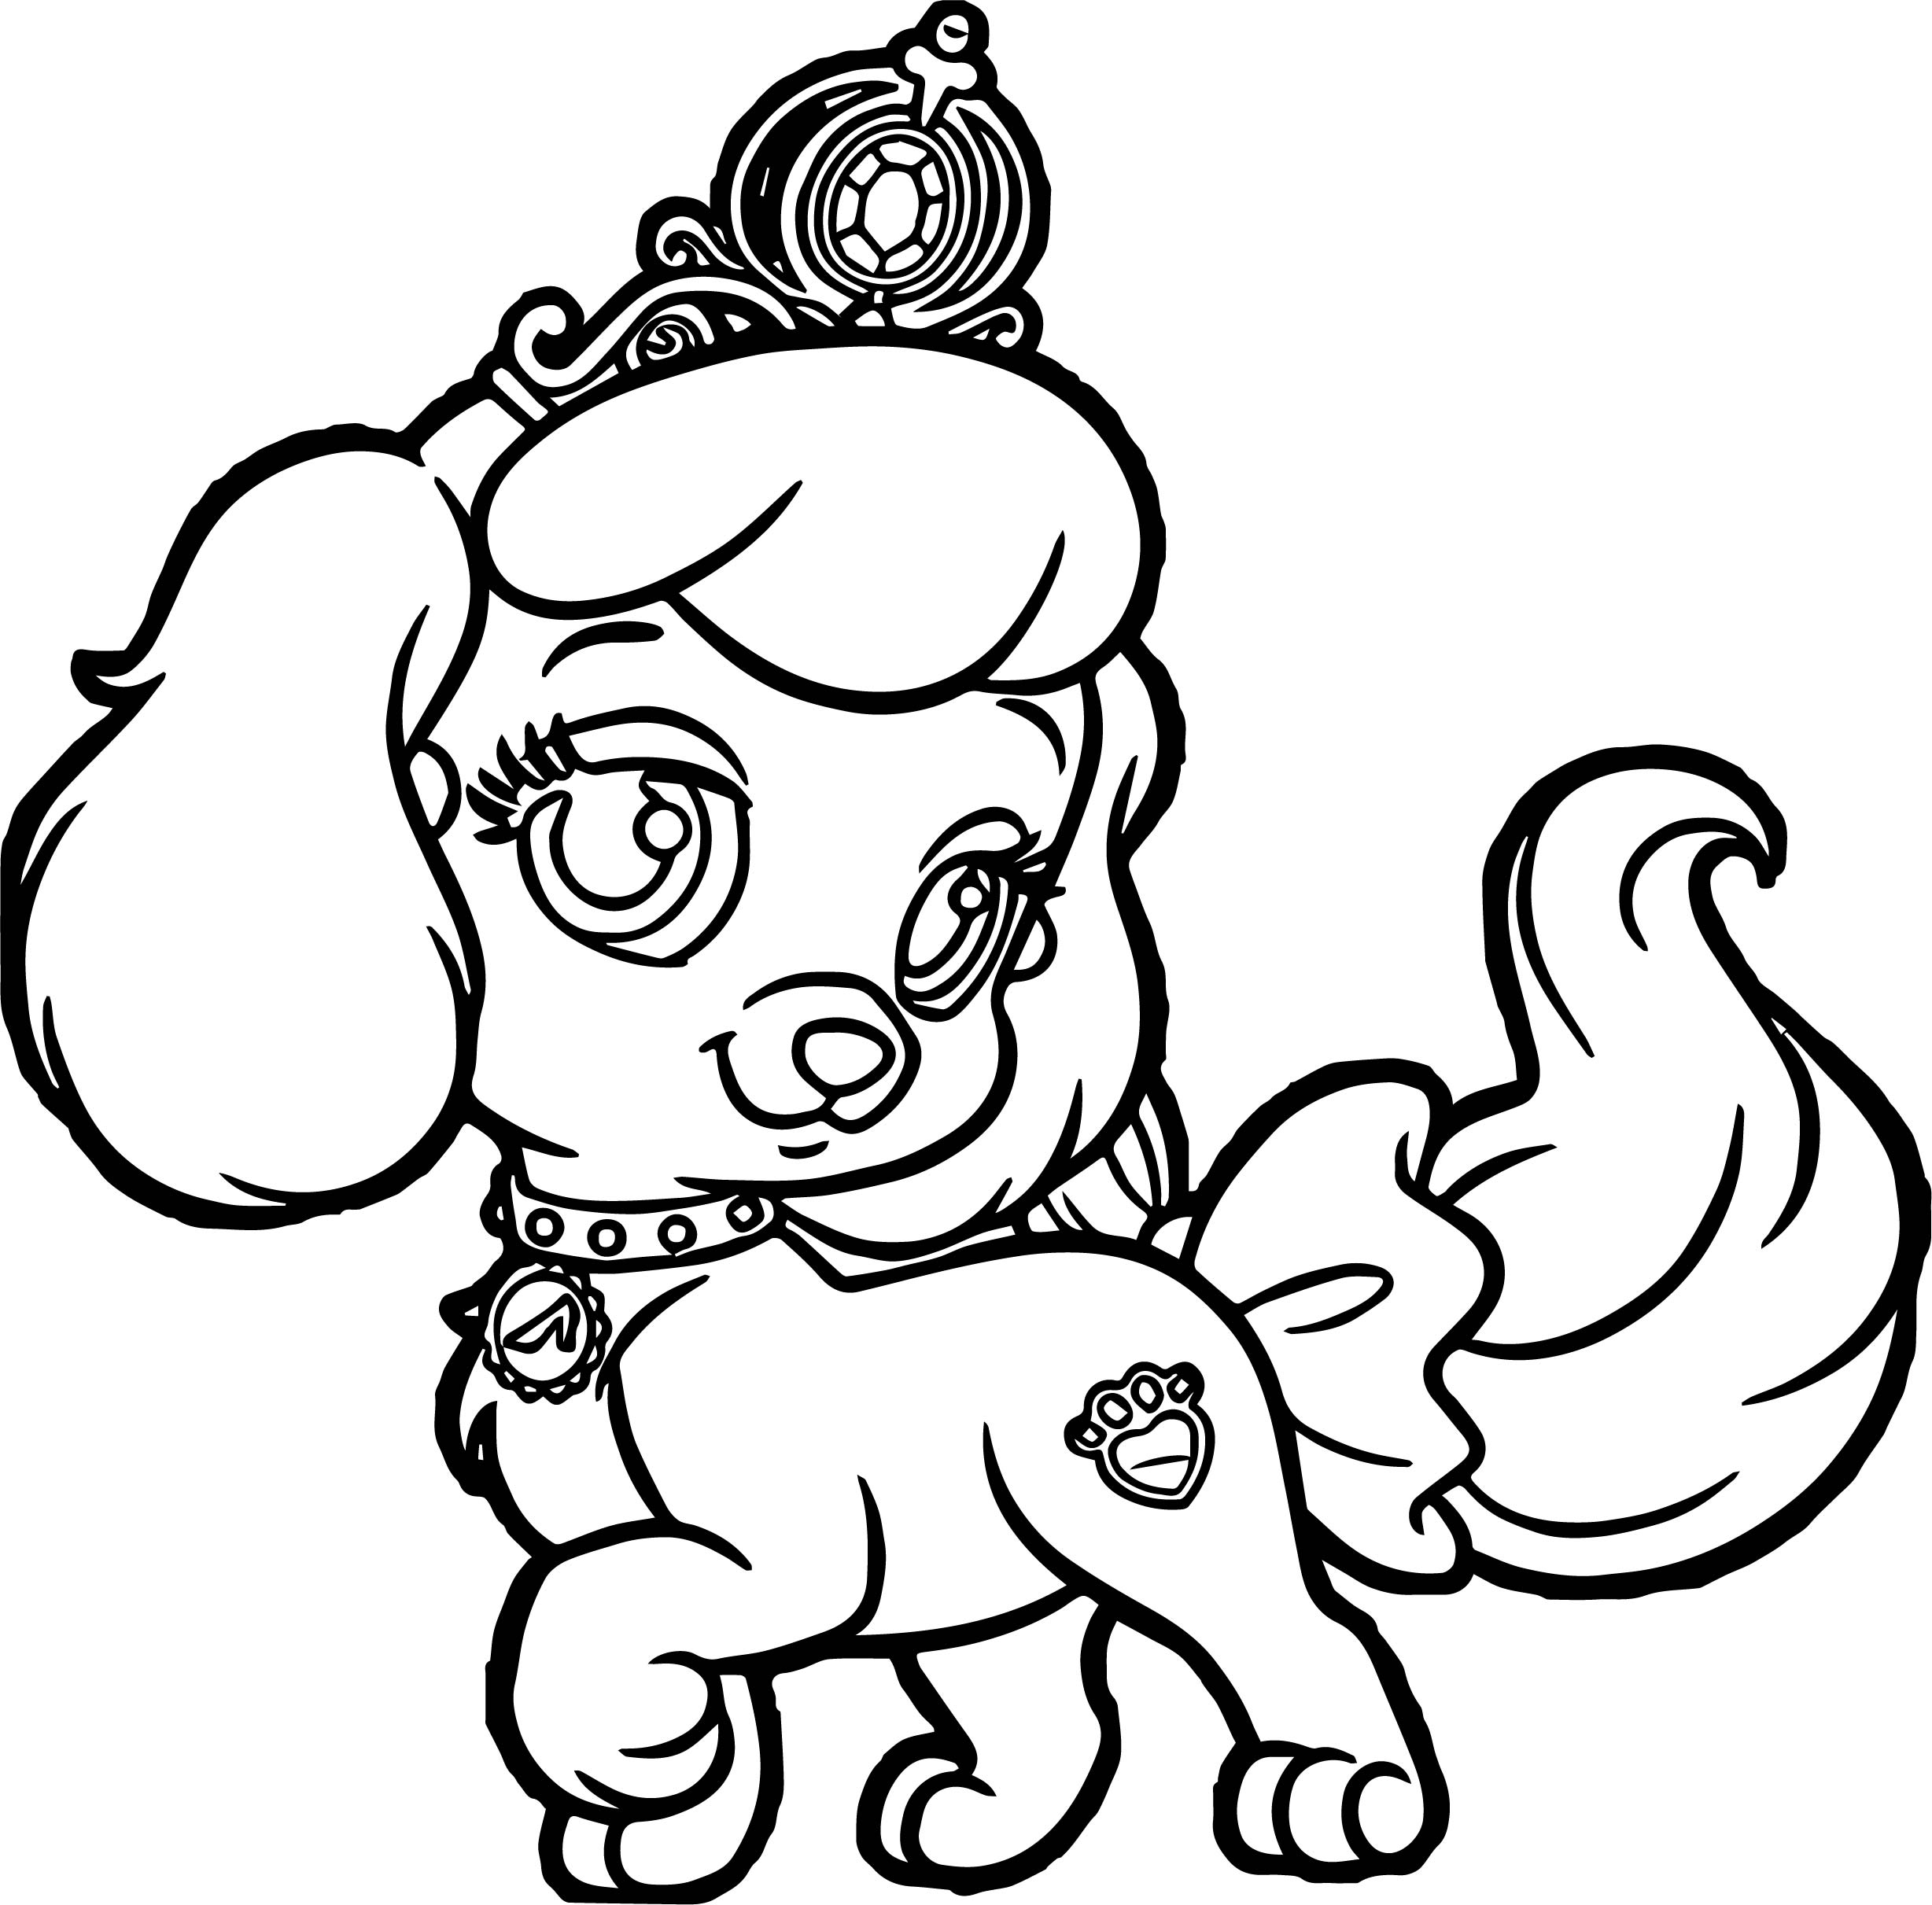 White Dog Coloring Page Coloring Coloring Pages